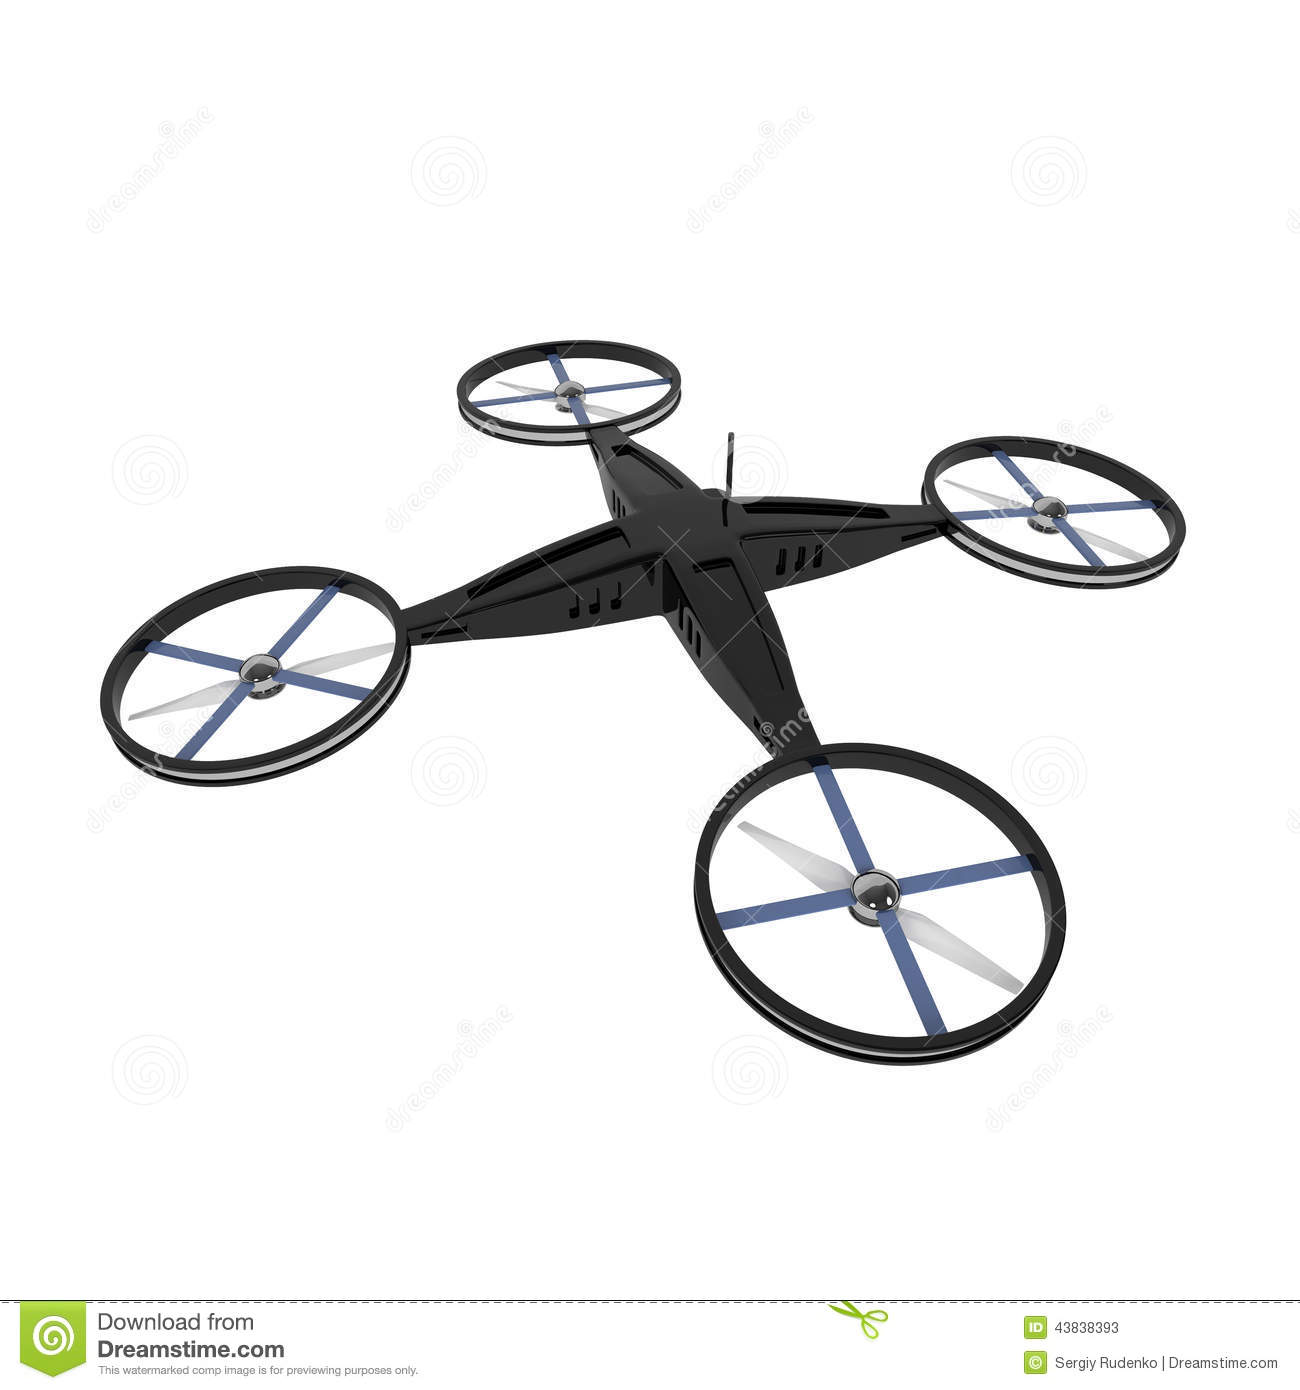 flying toy helicopter video with Stock Illustration Remote Controlled Quadcopter Drone Isolated White D Illustration Image43838393 on Disneys Planes Toy Range in addition Cars besides Watch further Mmii info icons DaMan2k42003 mario paperShyGuy as well Best Lego Sets.